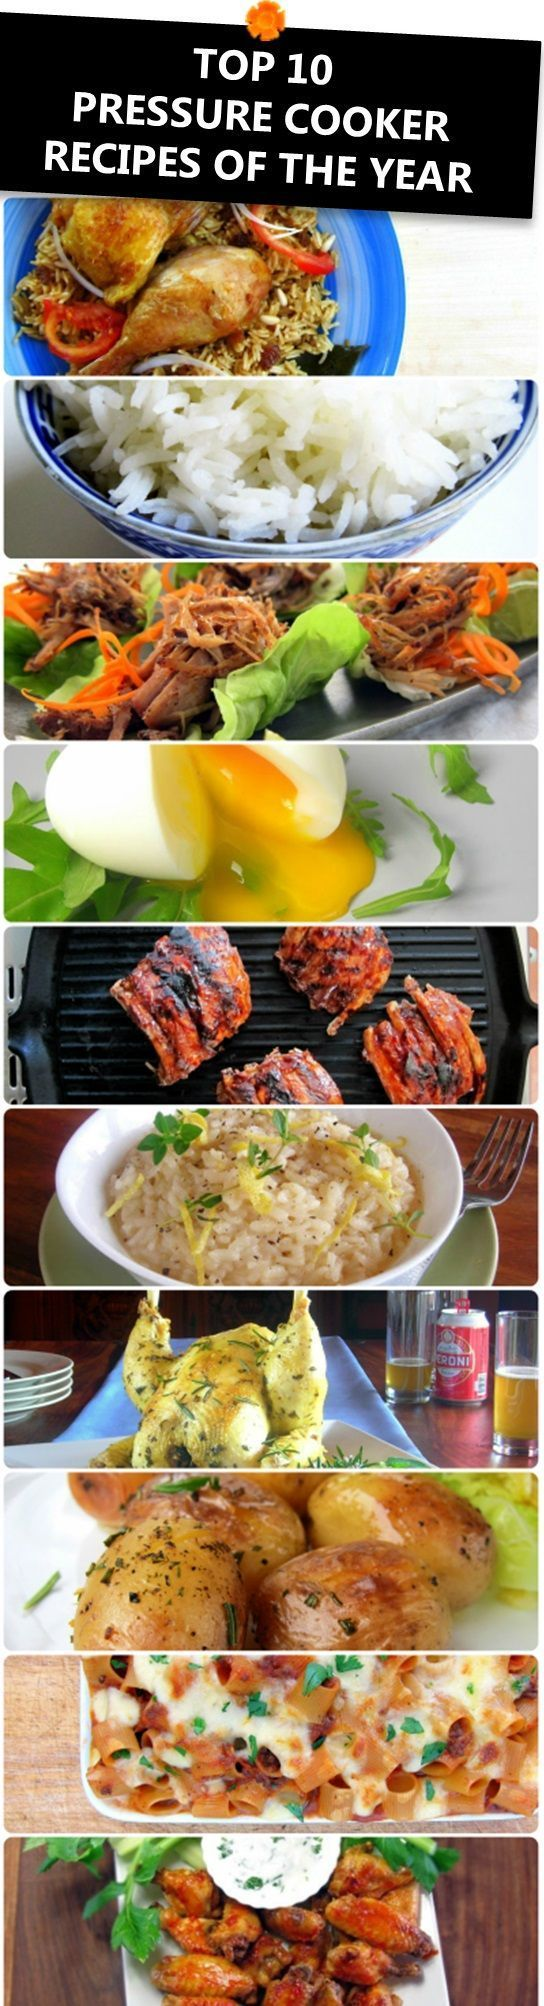 Top 10 Pressure Cooker Recipes of the Year! @hippressurecook